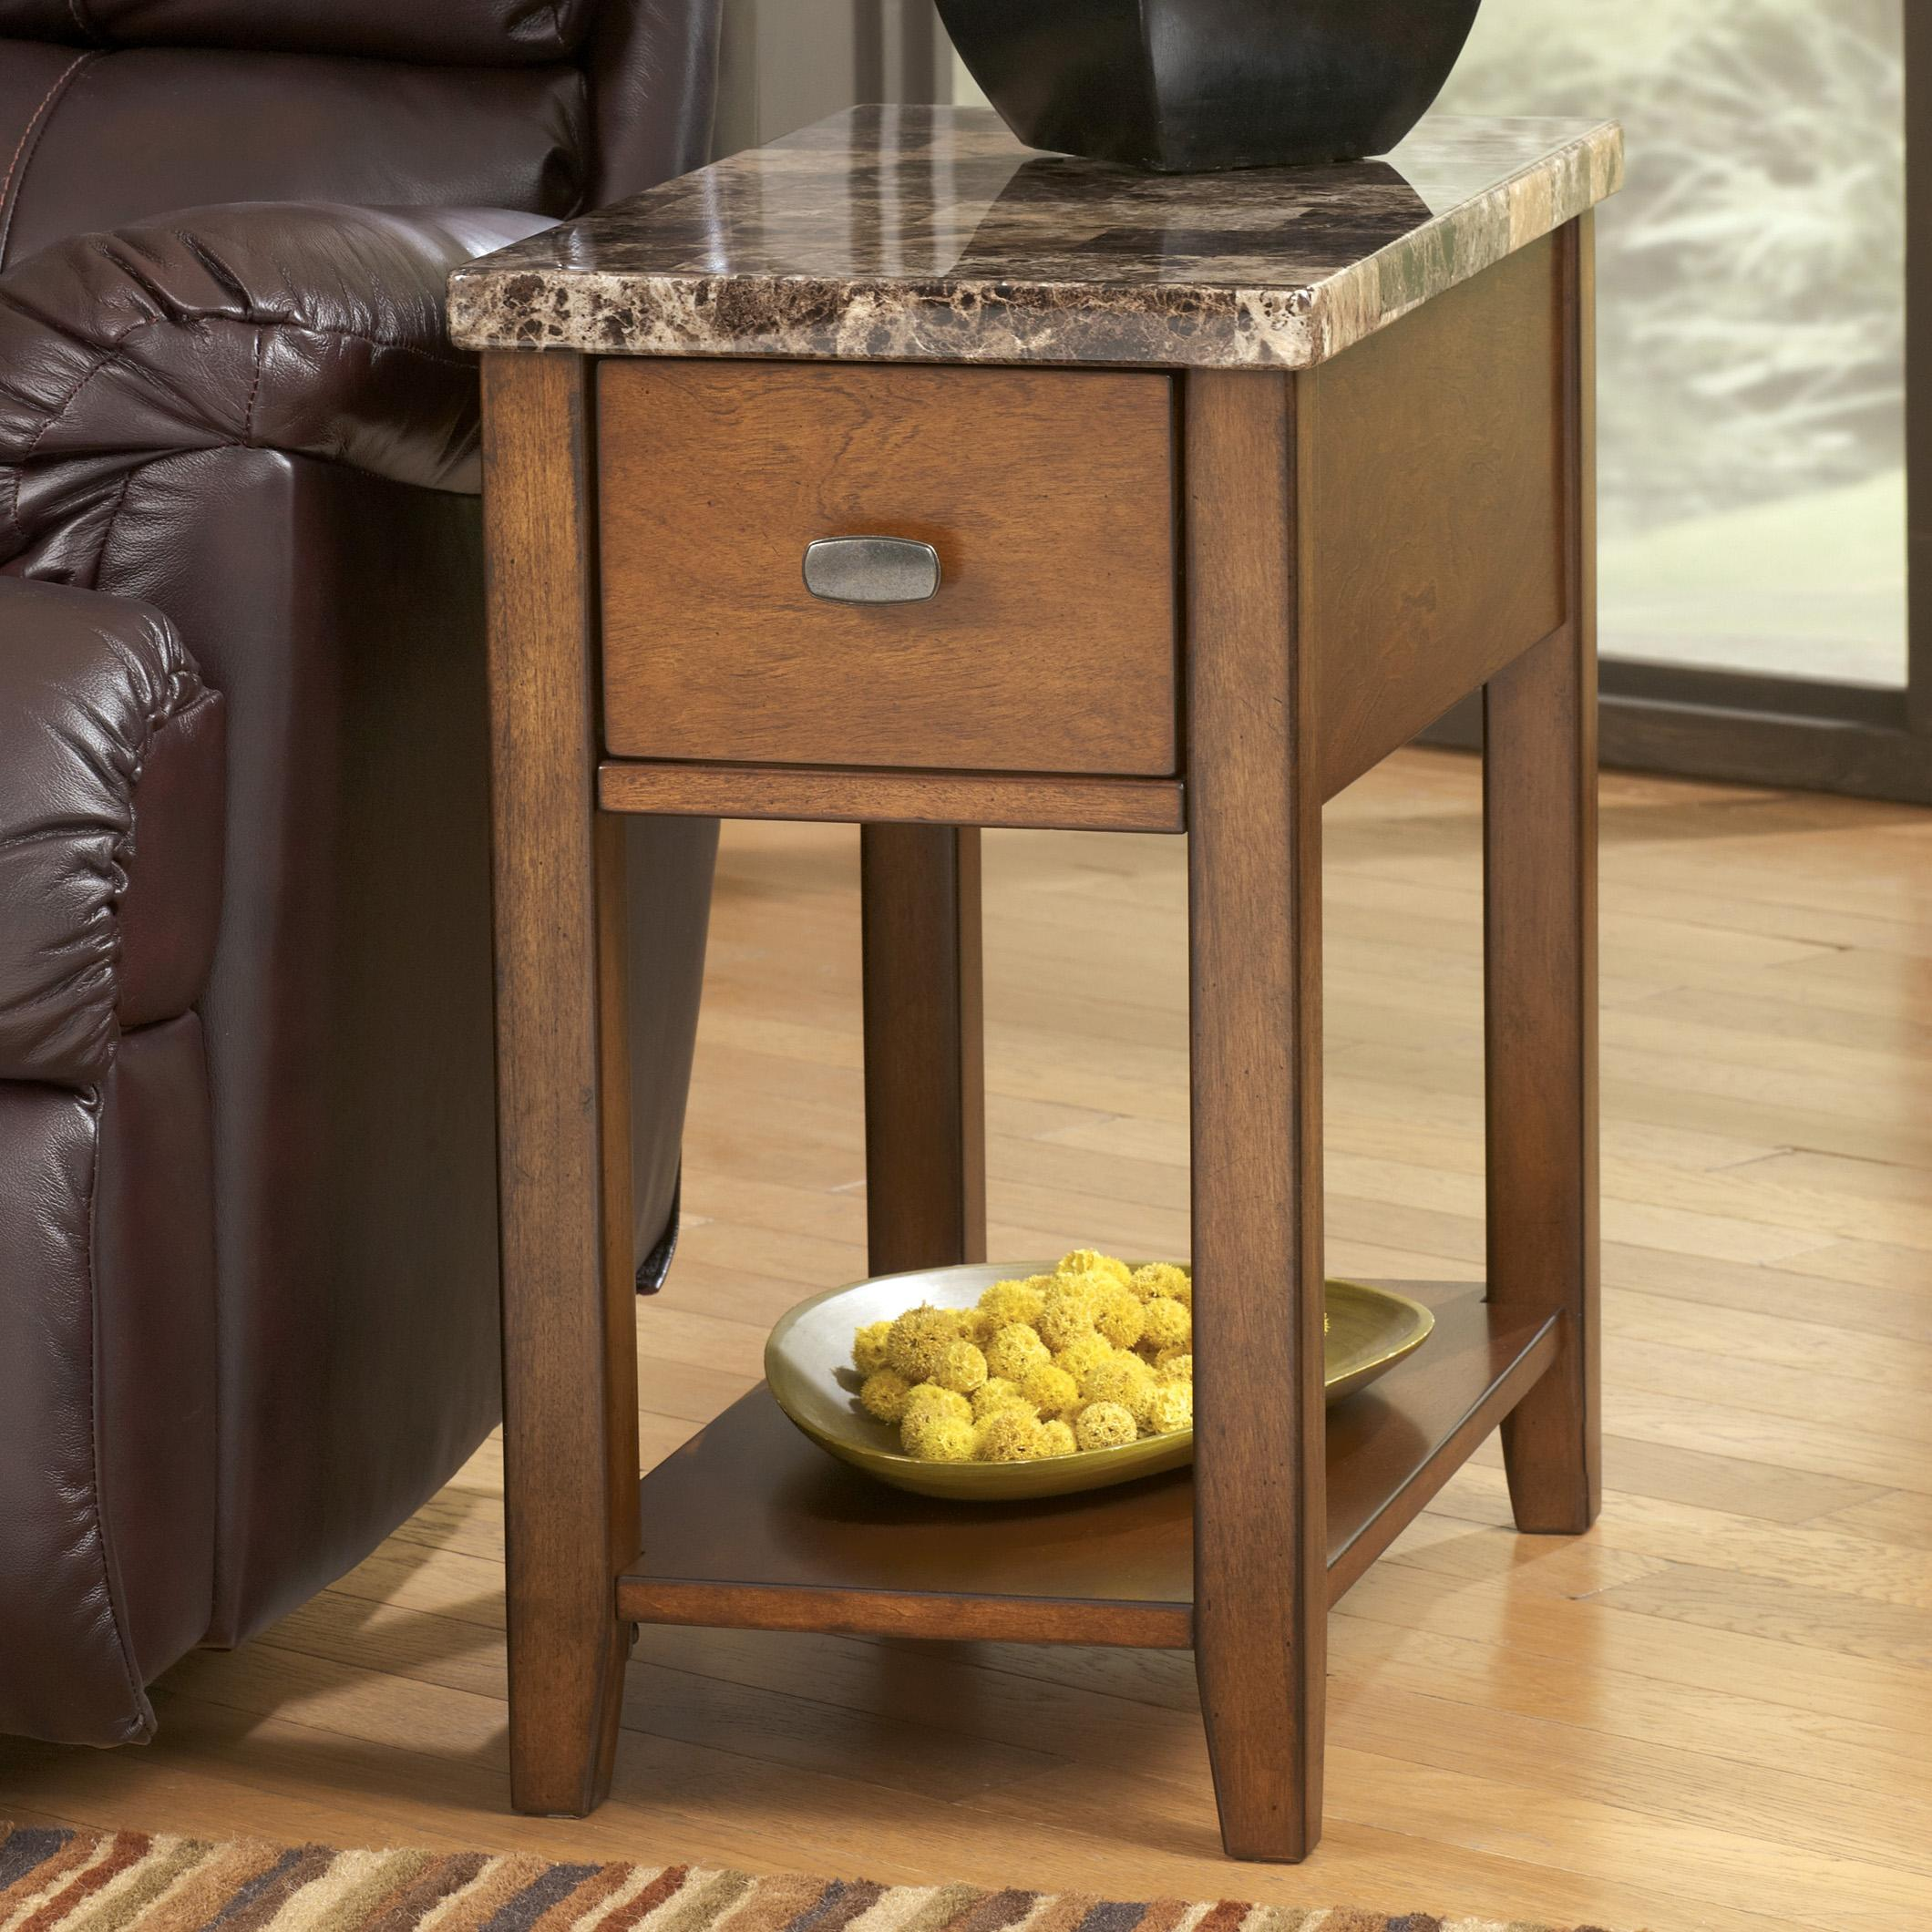 Signature Design by Ashley Breegin Chairside End Table - Item Number: T007-158